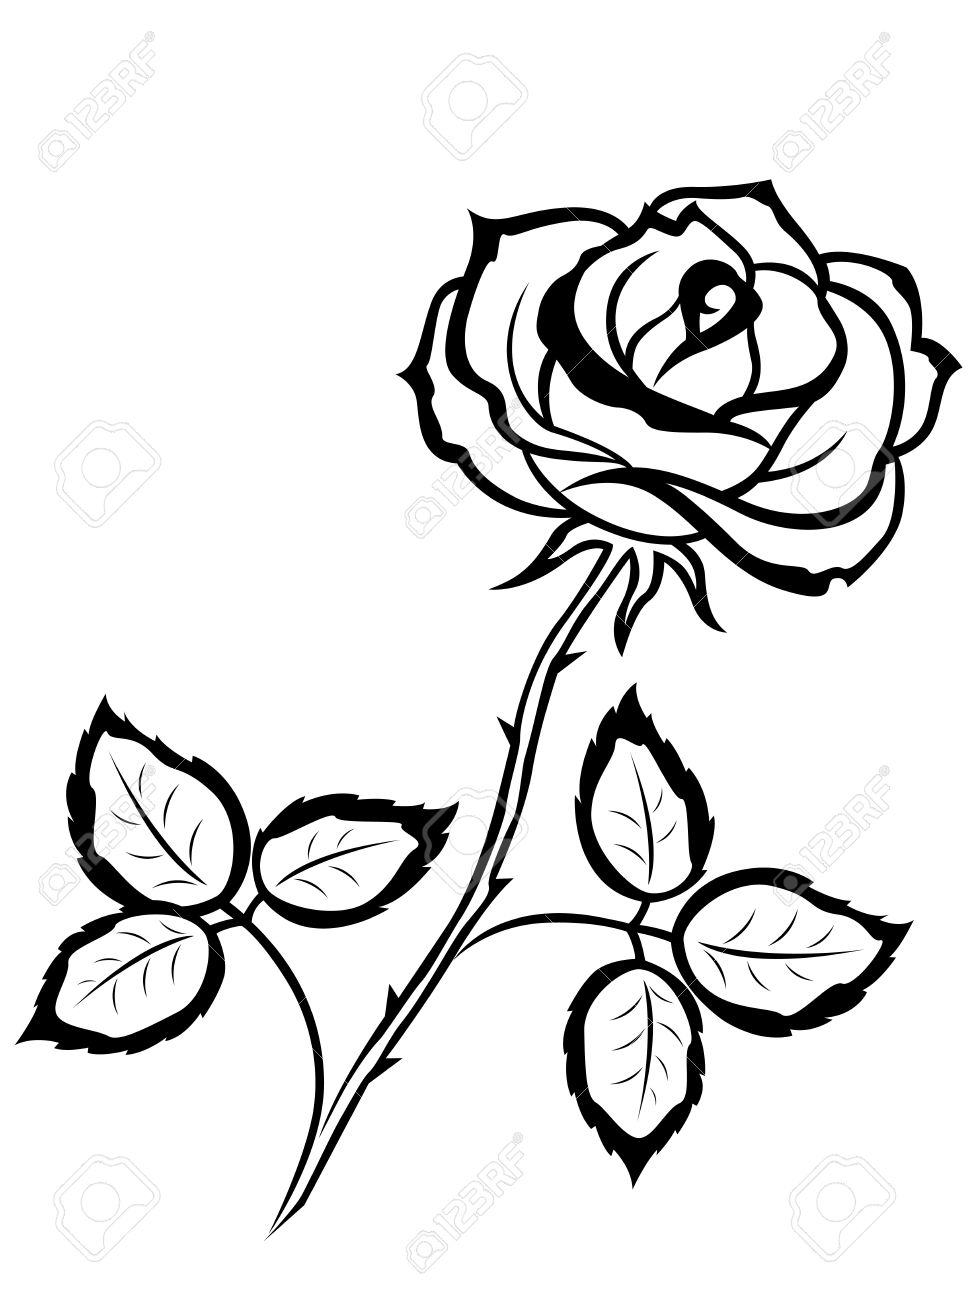 Beautiful Black Outline Of Single Rose Flower Isolated On A White